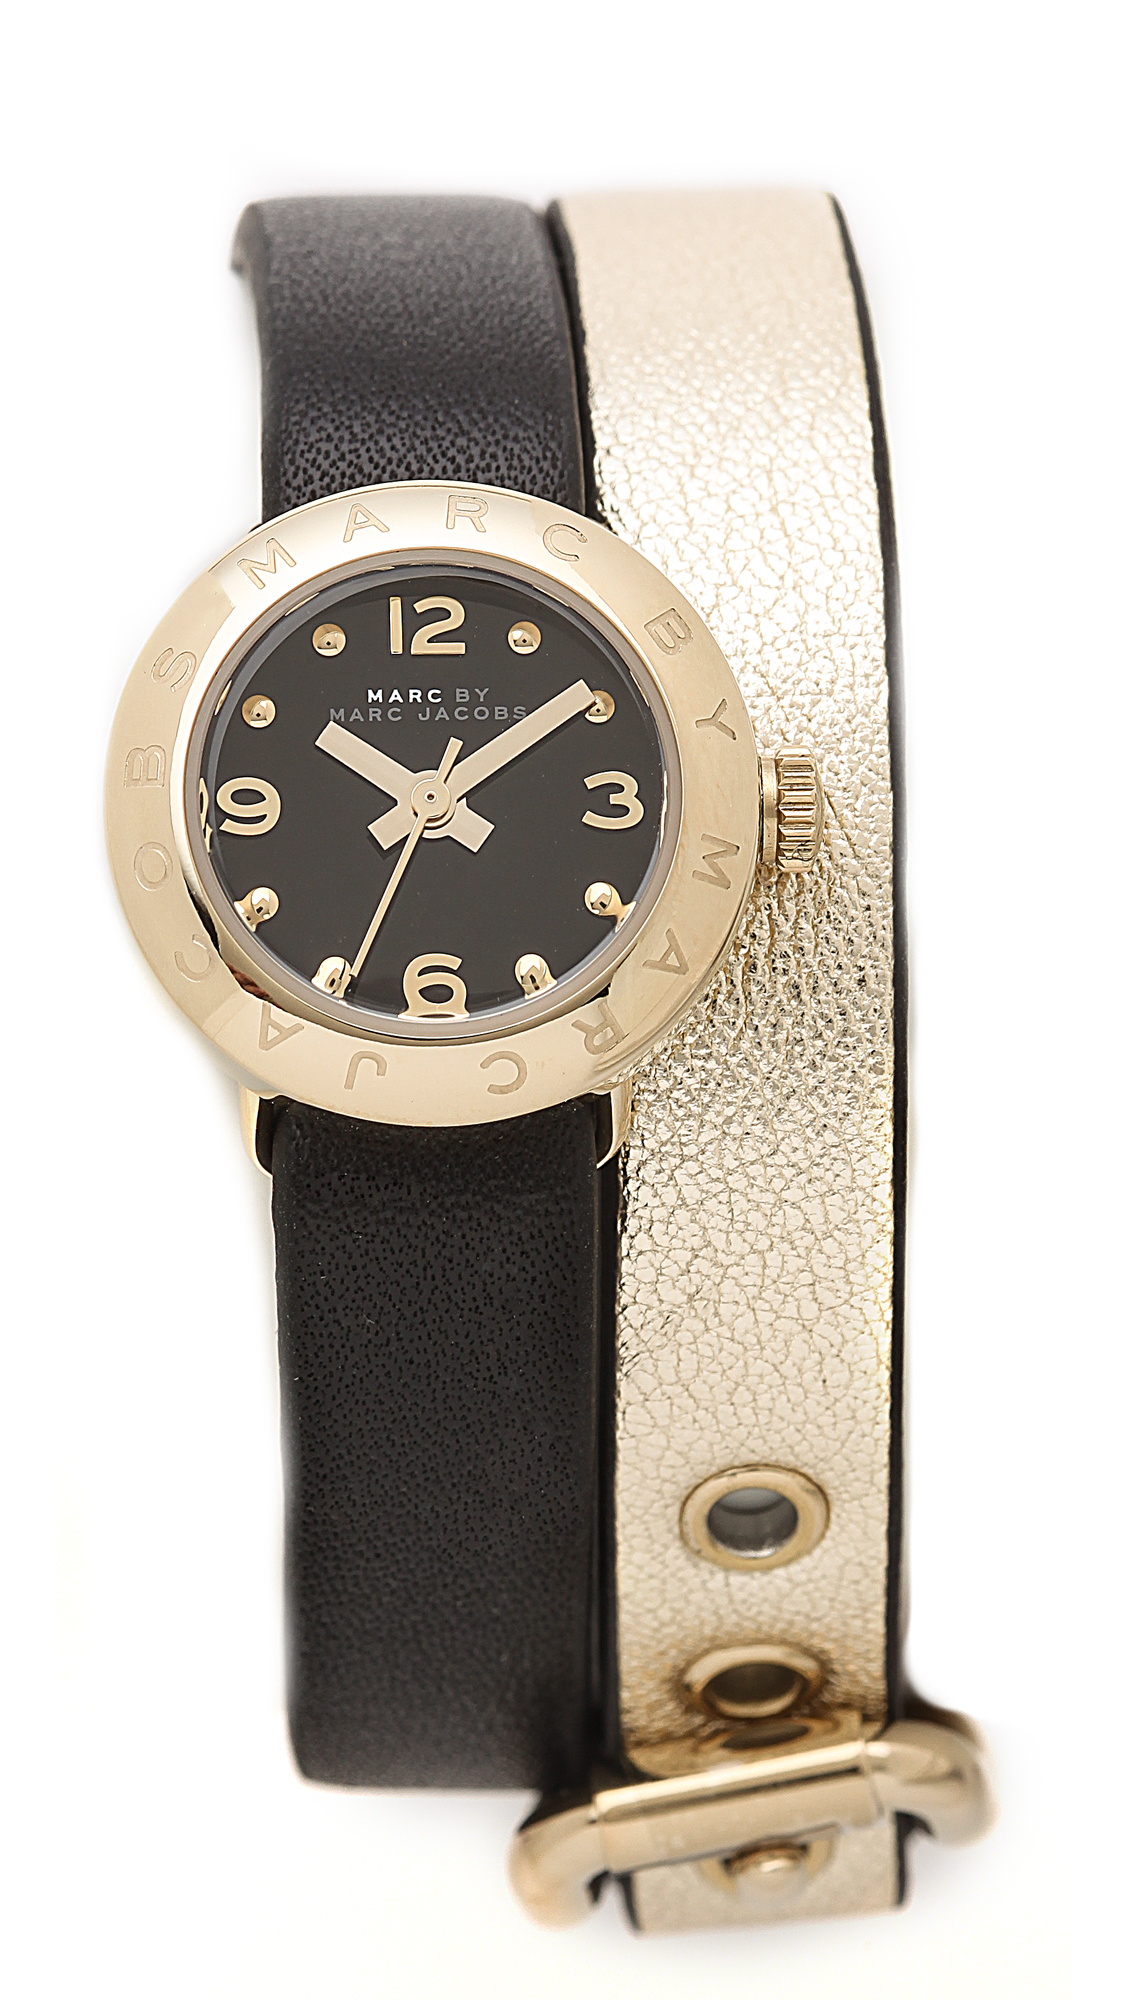 9c457d9963 Marc by Marc Jacobs Amy Double Wrap Leather Watch   SHOPBOP